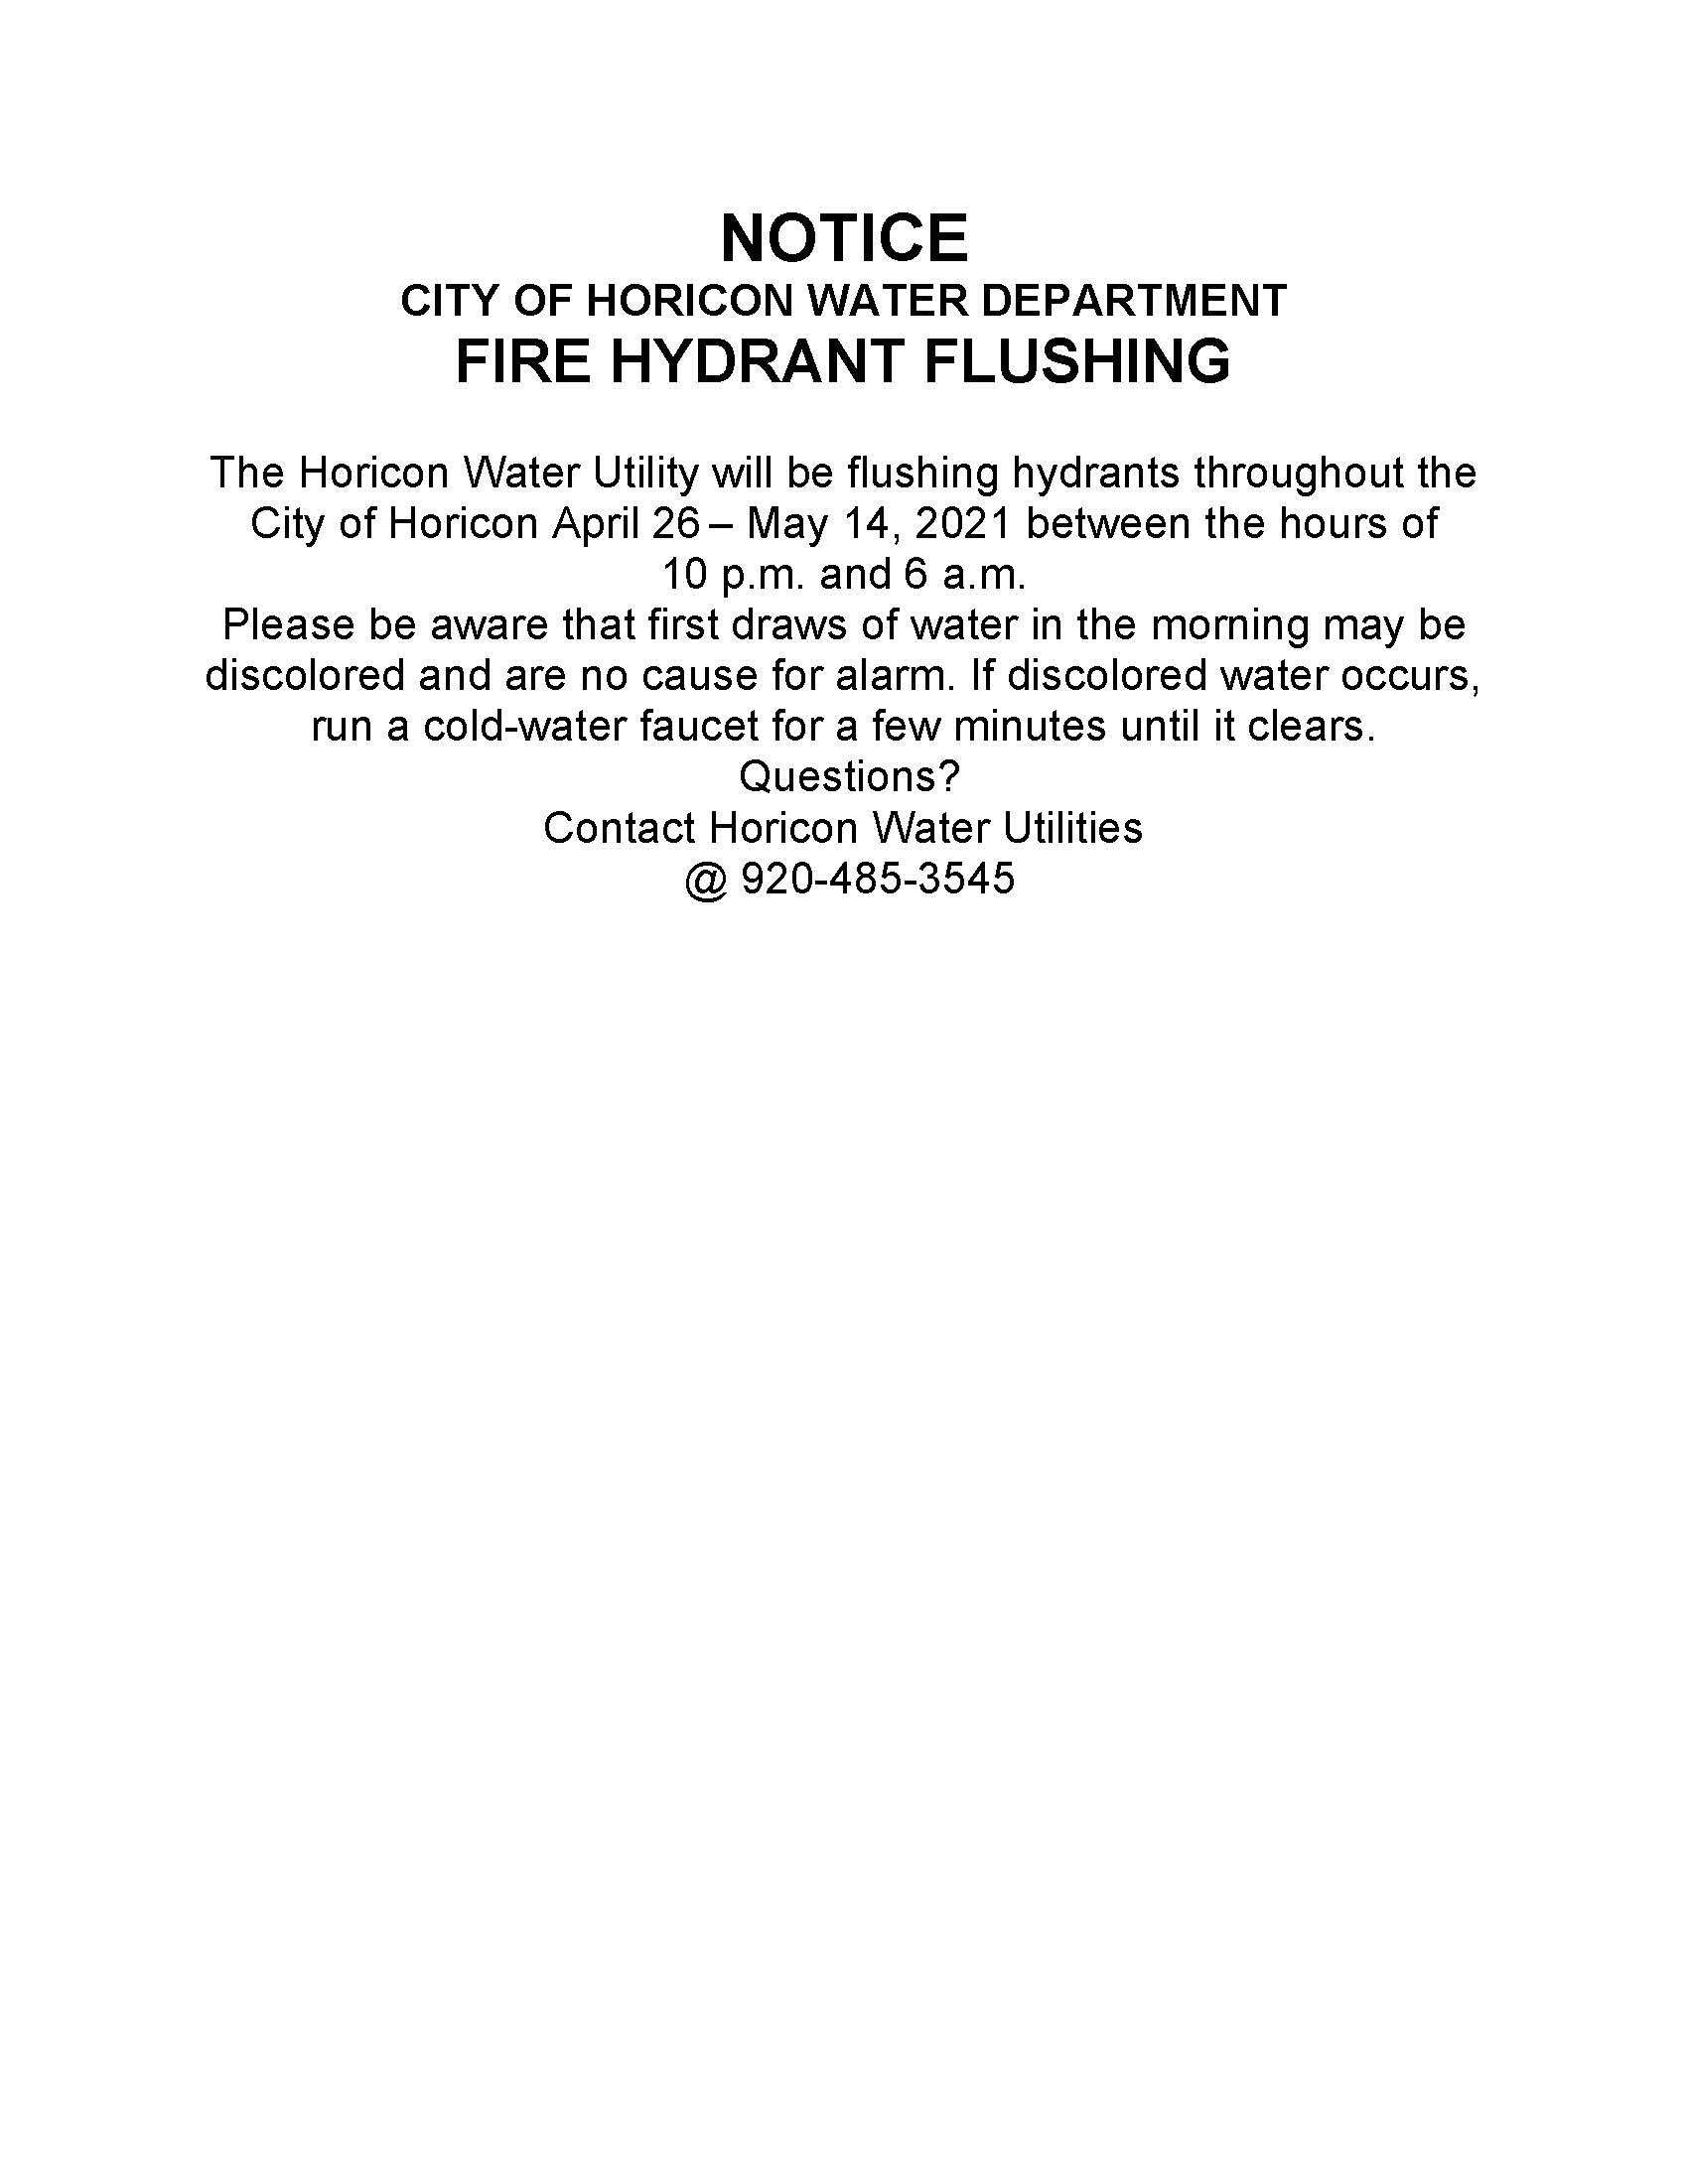 2021-04-19_Notice of Fire Hydrant Flushing